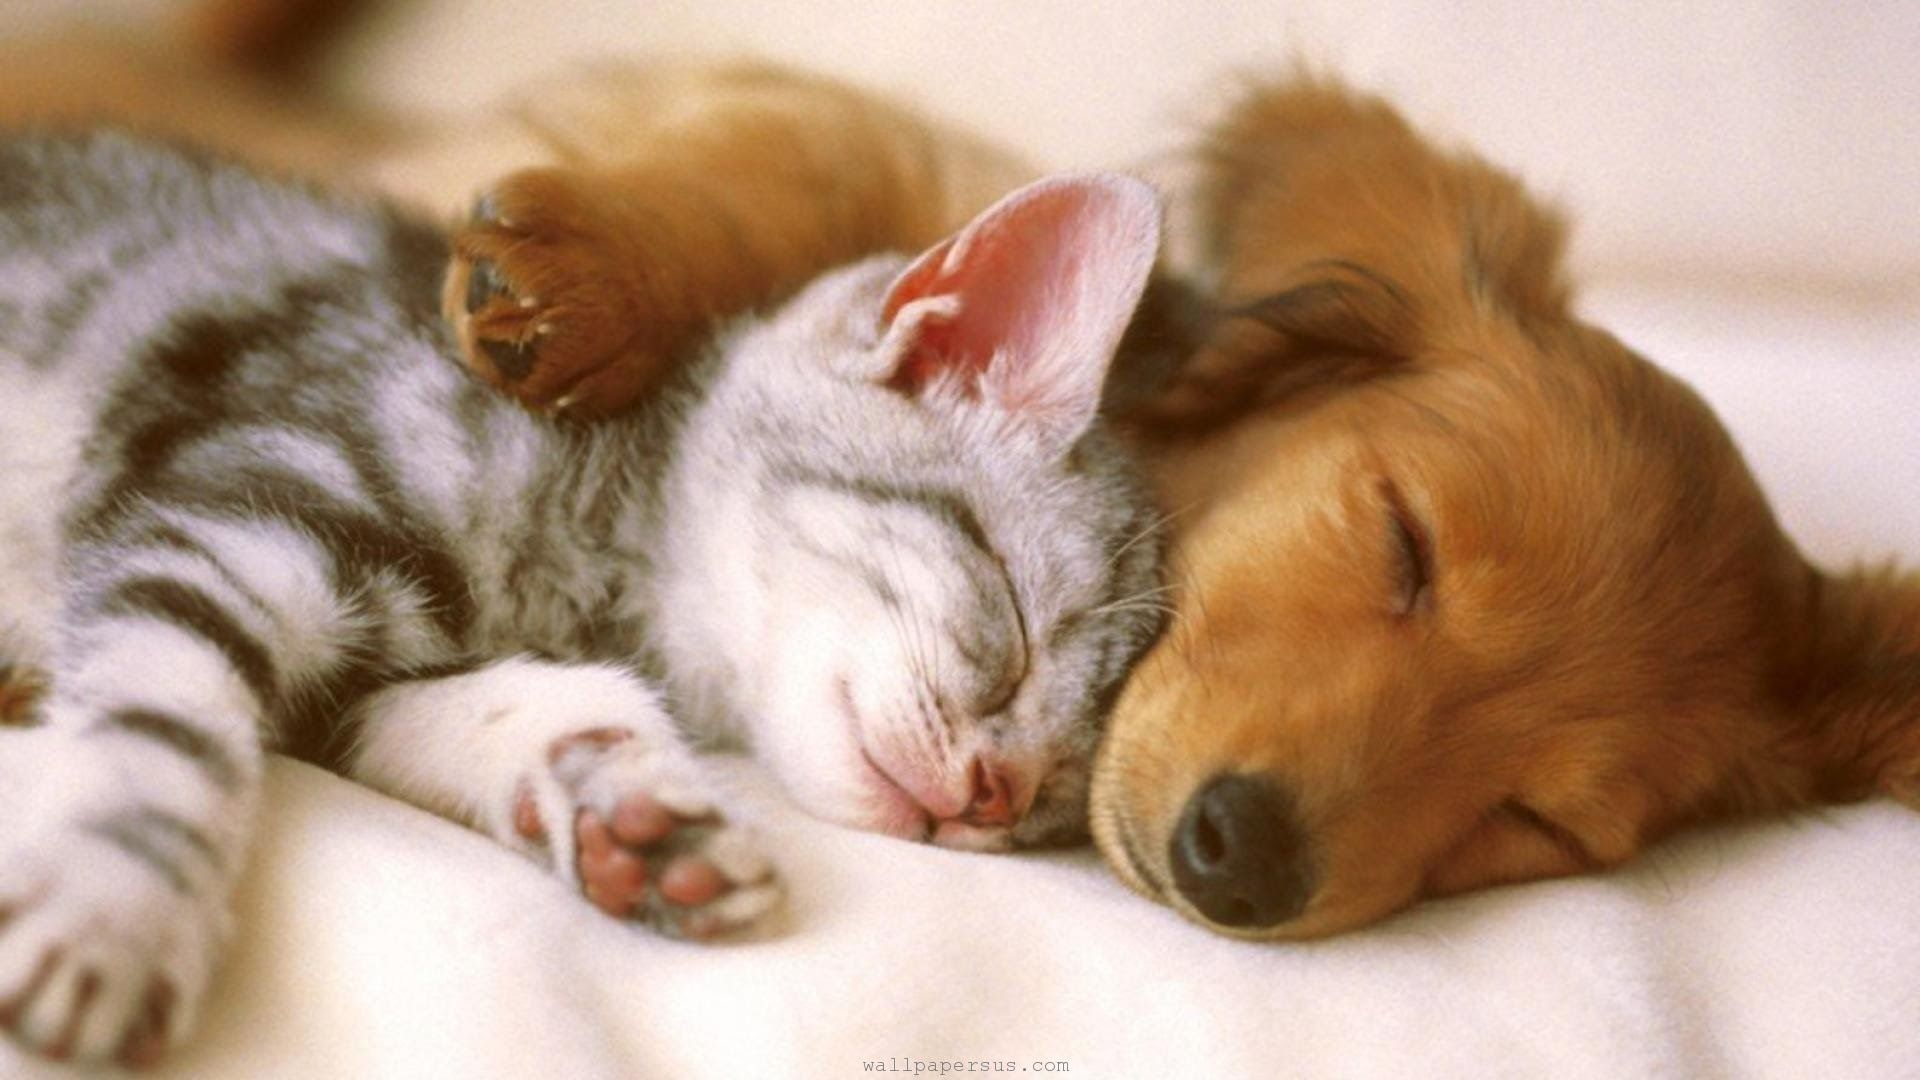 10 Top Cute Kittens And Puppies Full Hd 1080p For Pc Background Dogs Hugging Kittens And Puppies Animals Friendship